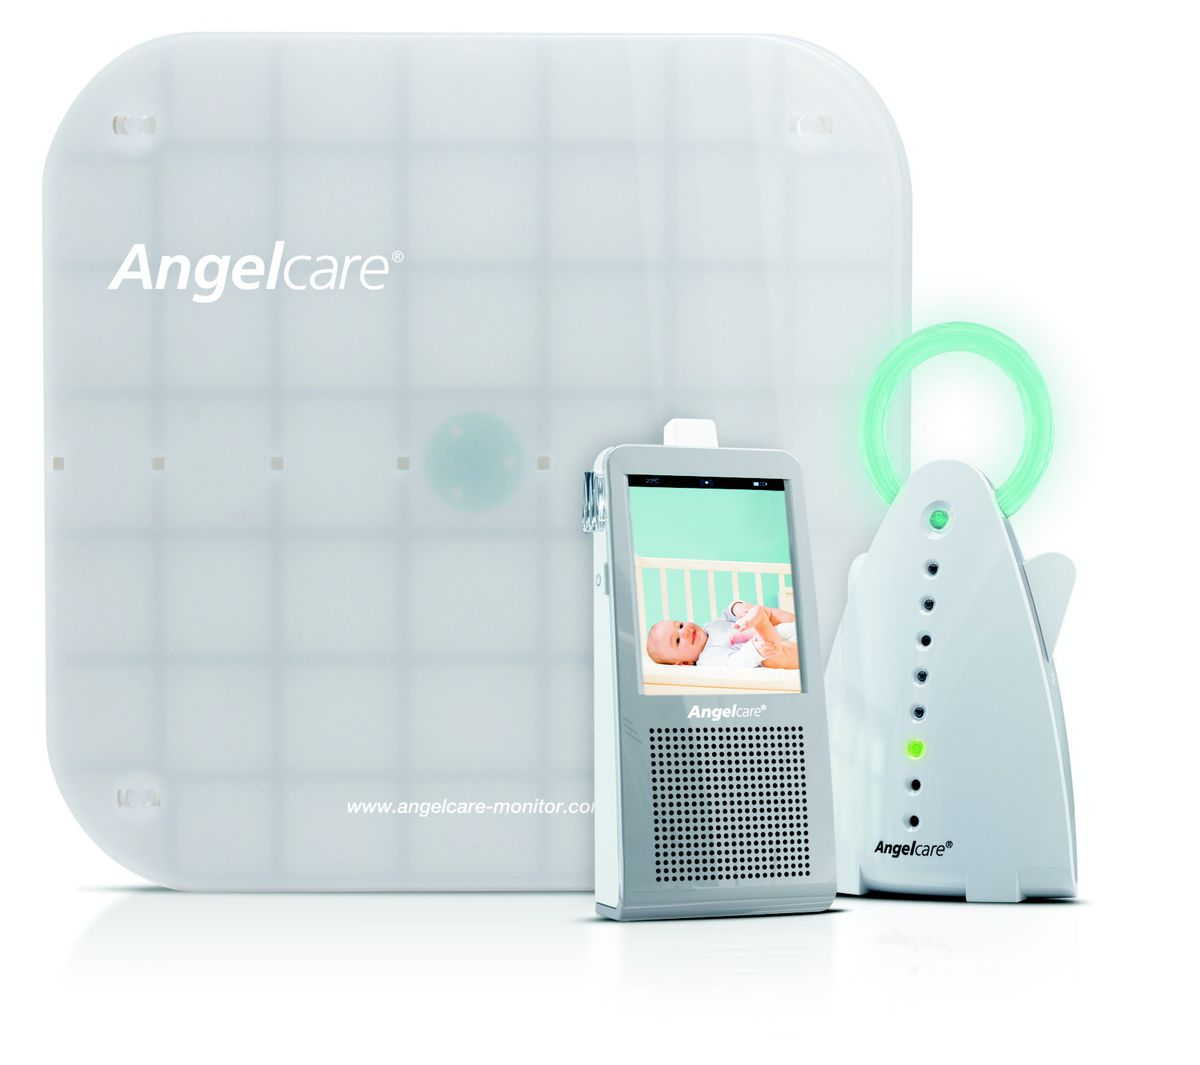 angelcare ultimate digital baby video sound monitor buy online in south africa. Black Bedroom Furniture Sets. Home Design Ideas